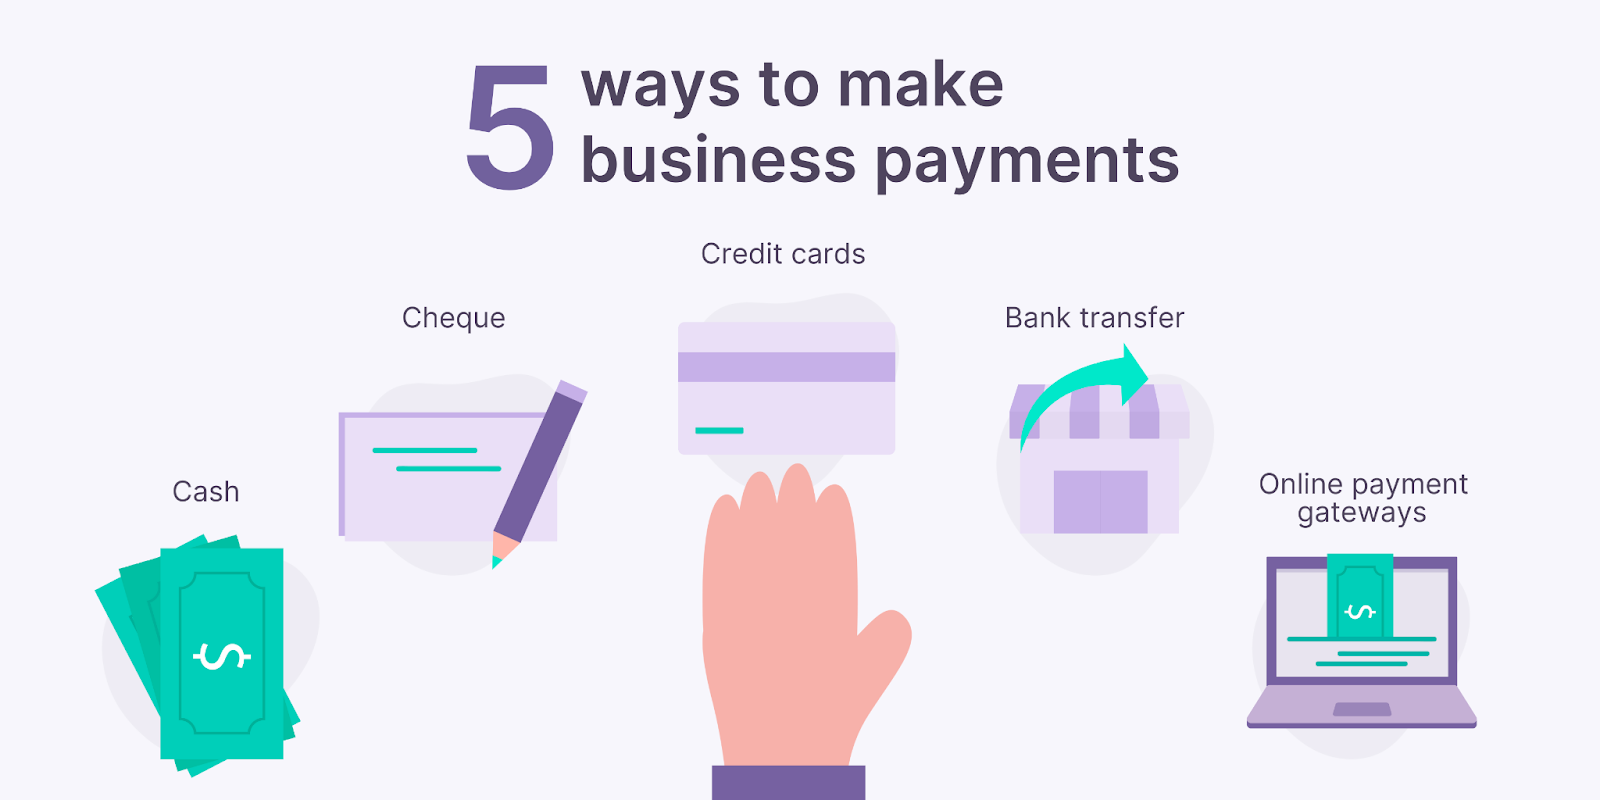 5 ways to make business payments